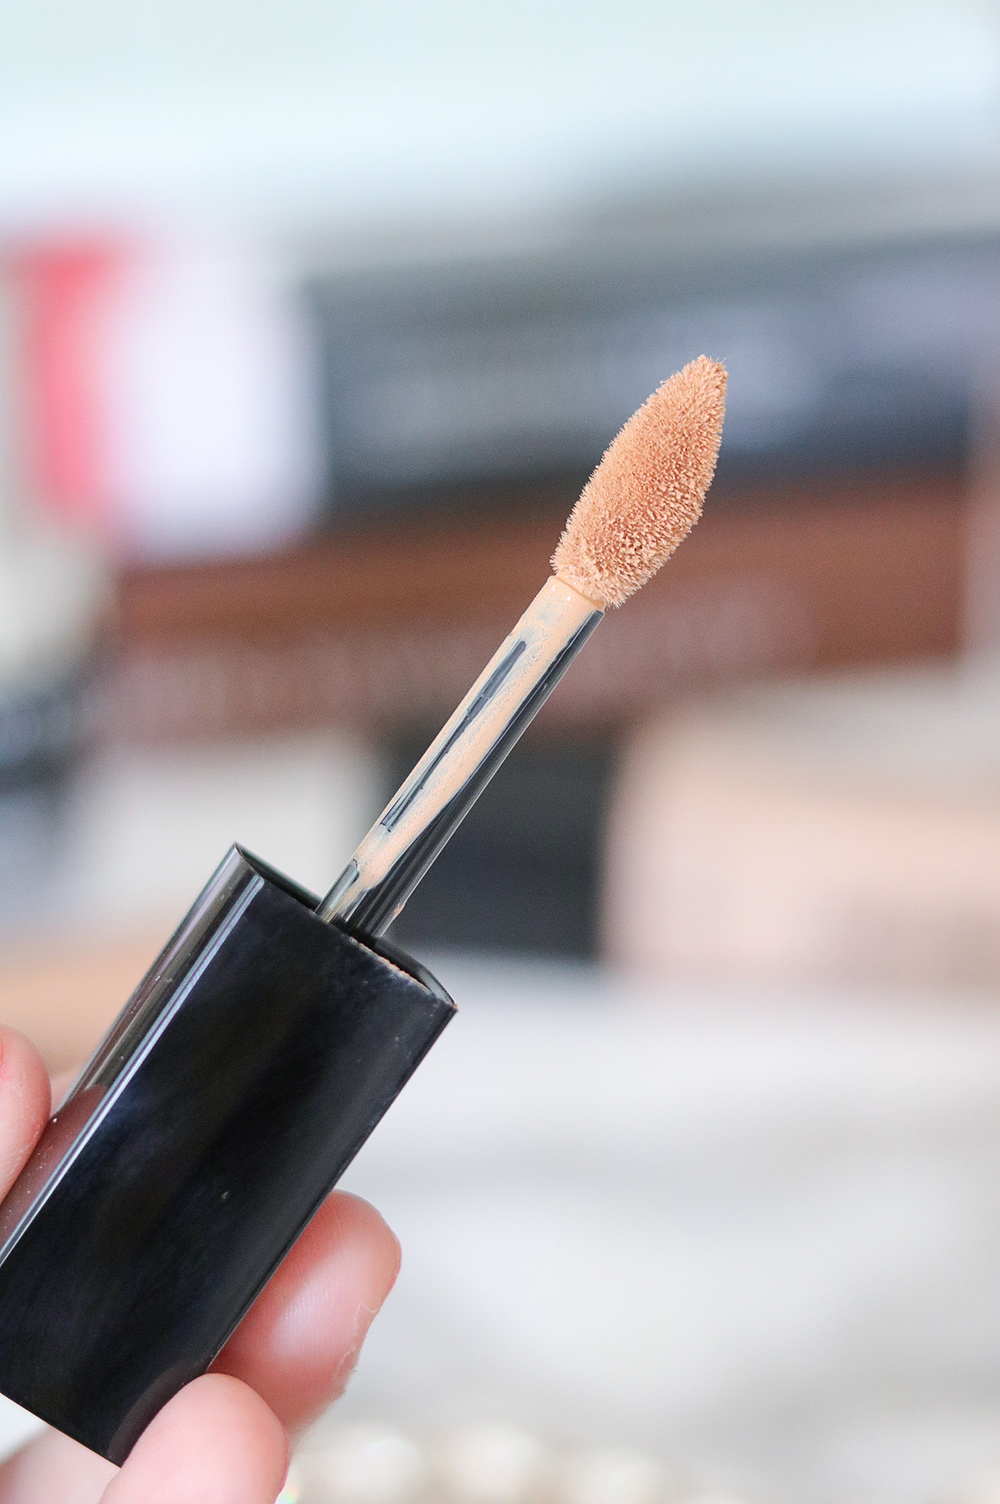 Lancome Teint Idole Ultra Wear Concealer Review I DreaminLace.com #beautyblog #makeupaddict